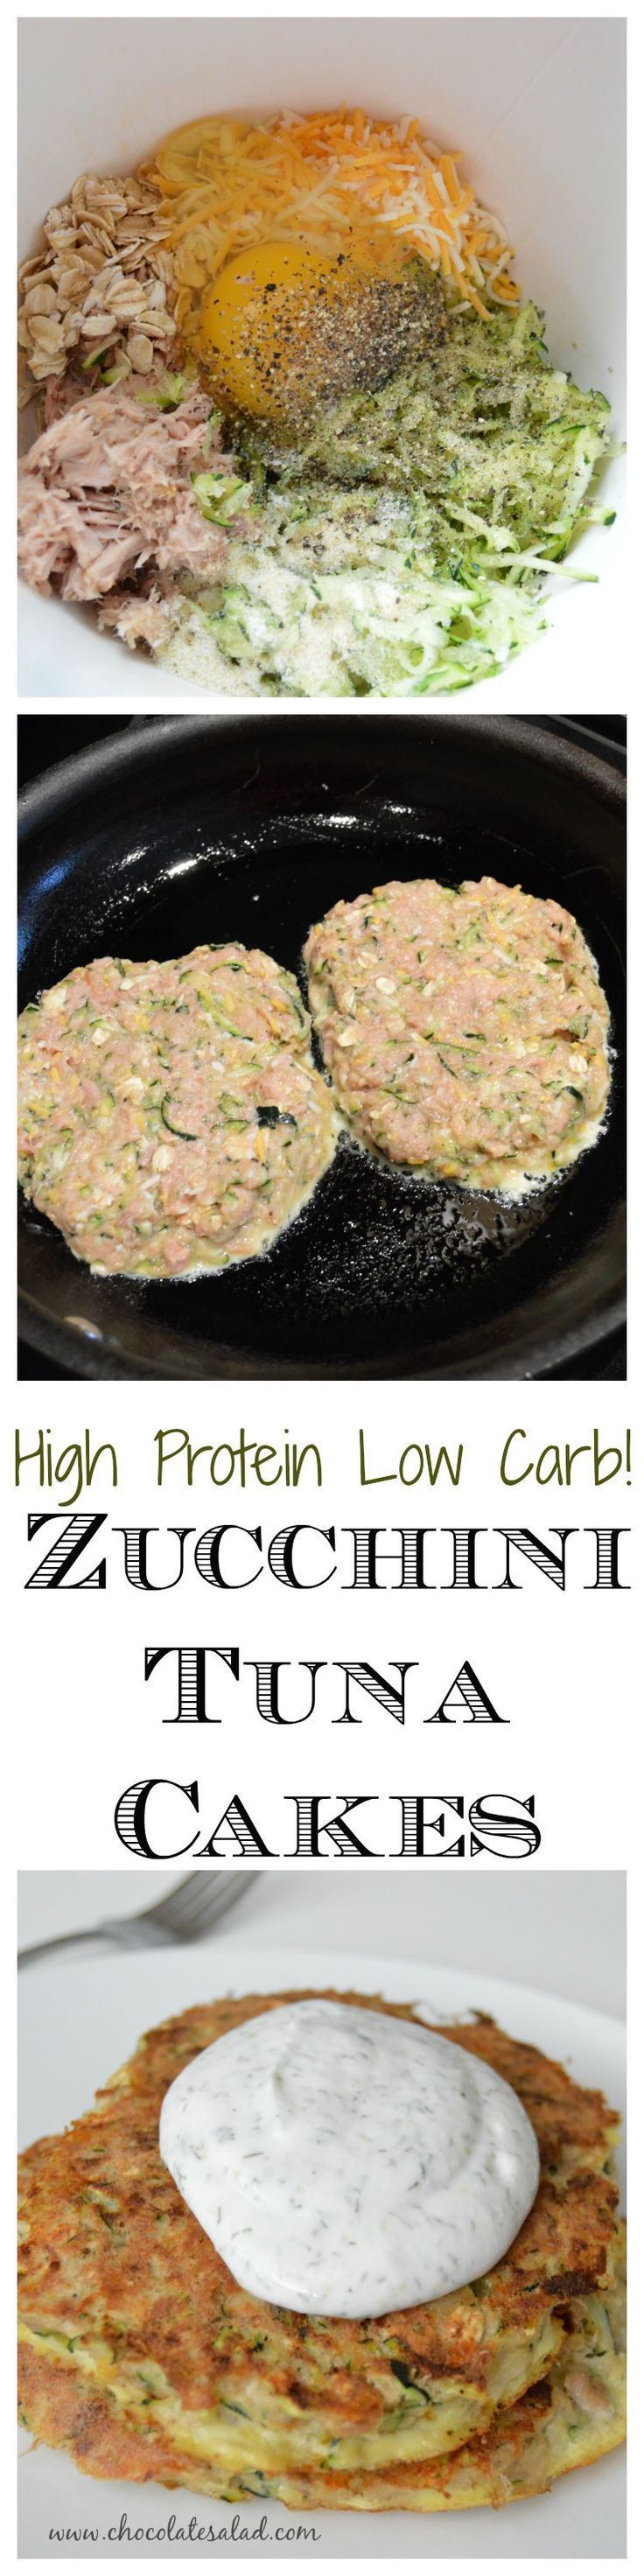 Low Carb Zucchini Tuna Cakes. Only 280 calories and 34 g protein! Very low in carbs, but high in protein - 34g! This keto recipe is a great-tasting healthy meal. (Chicken)